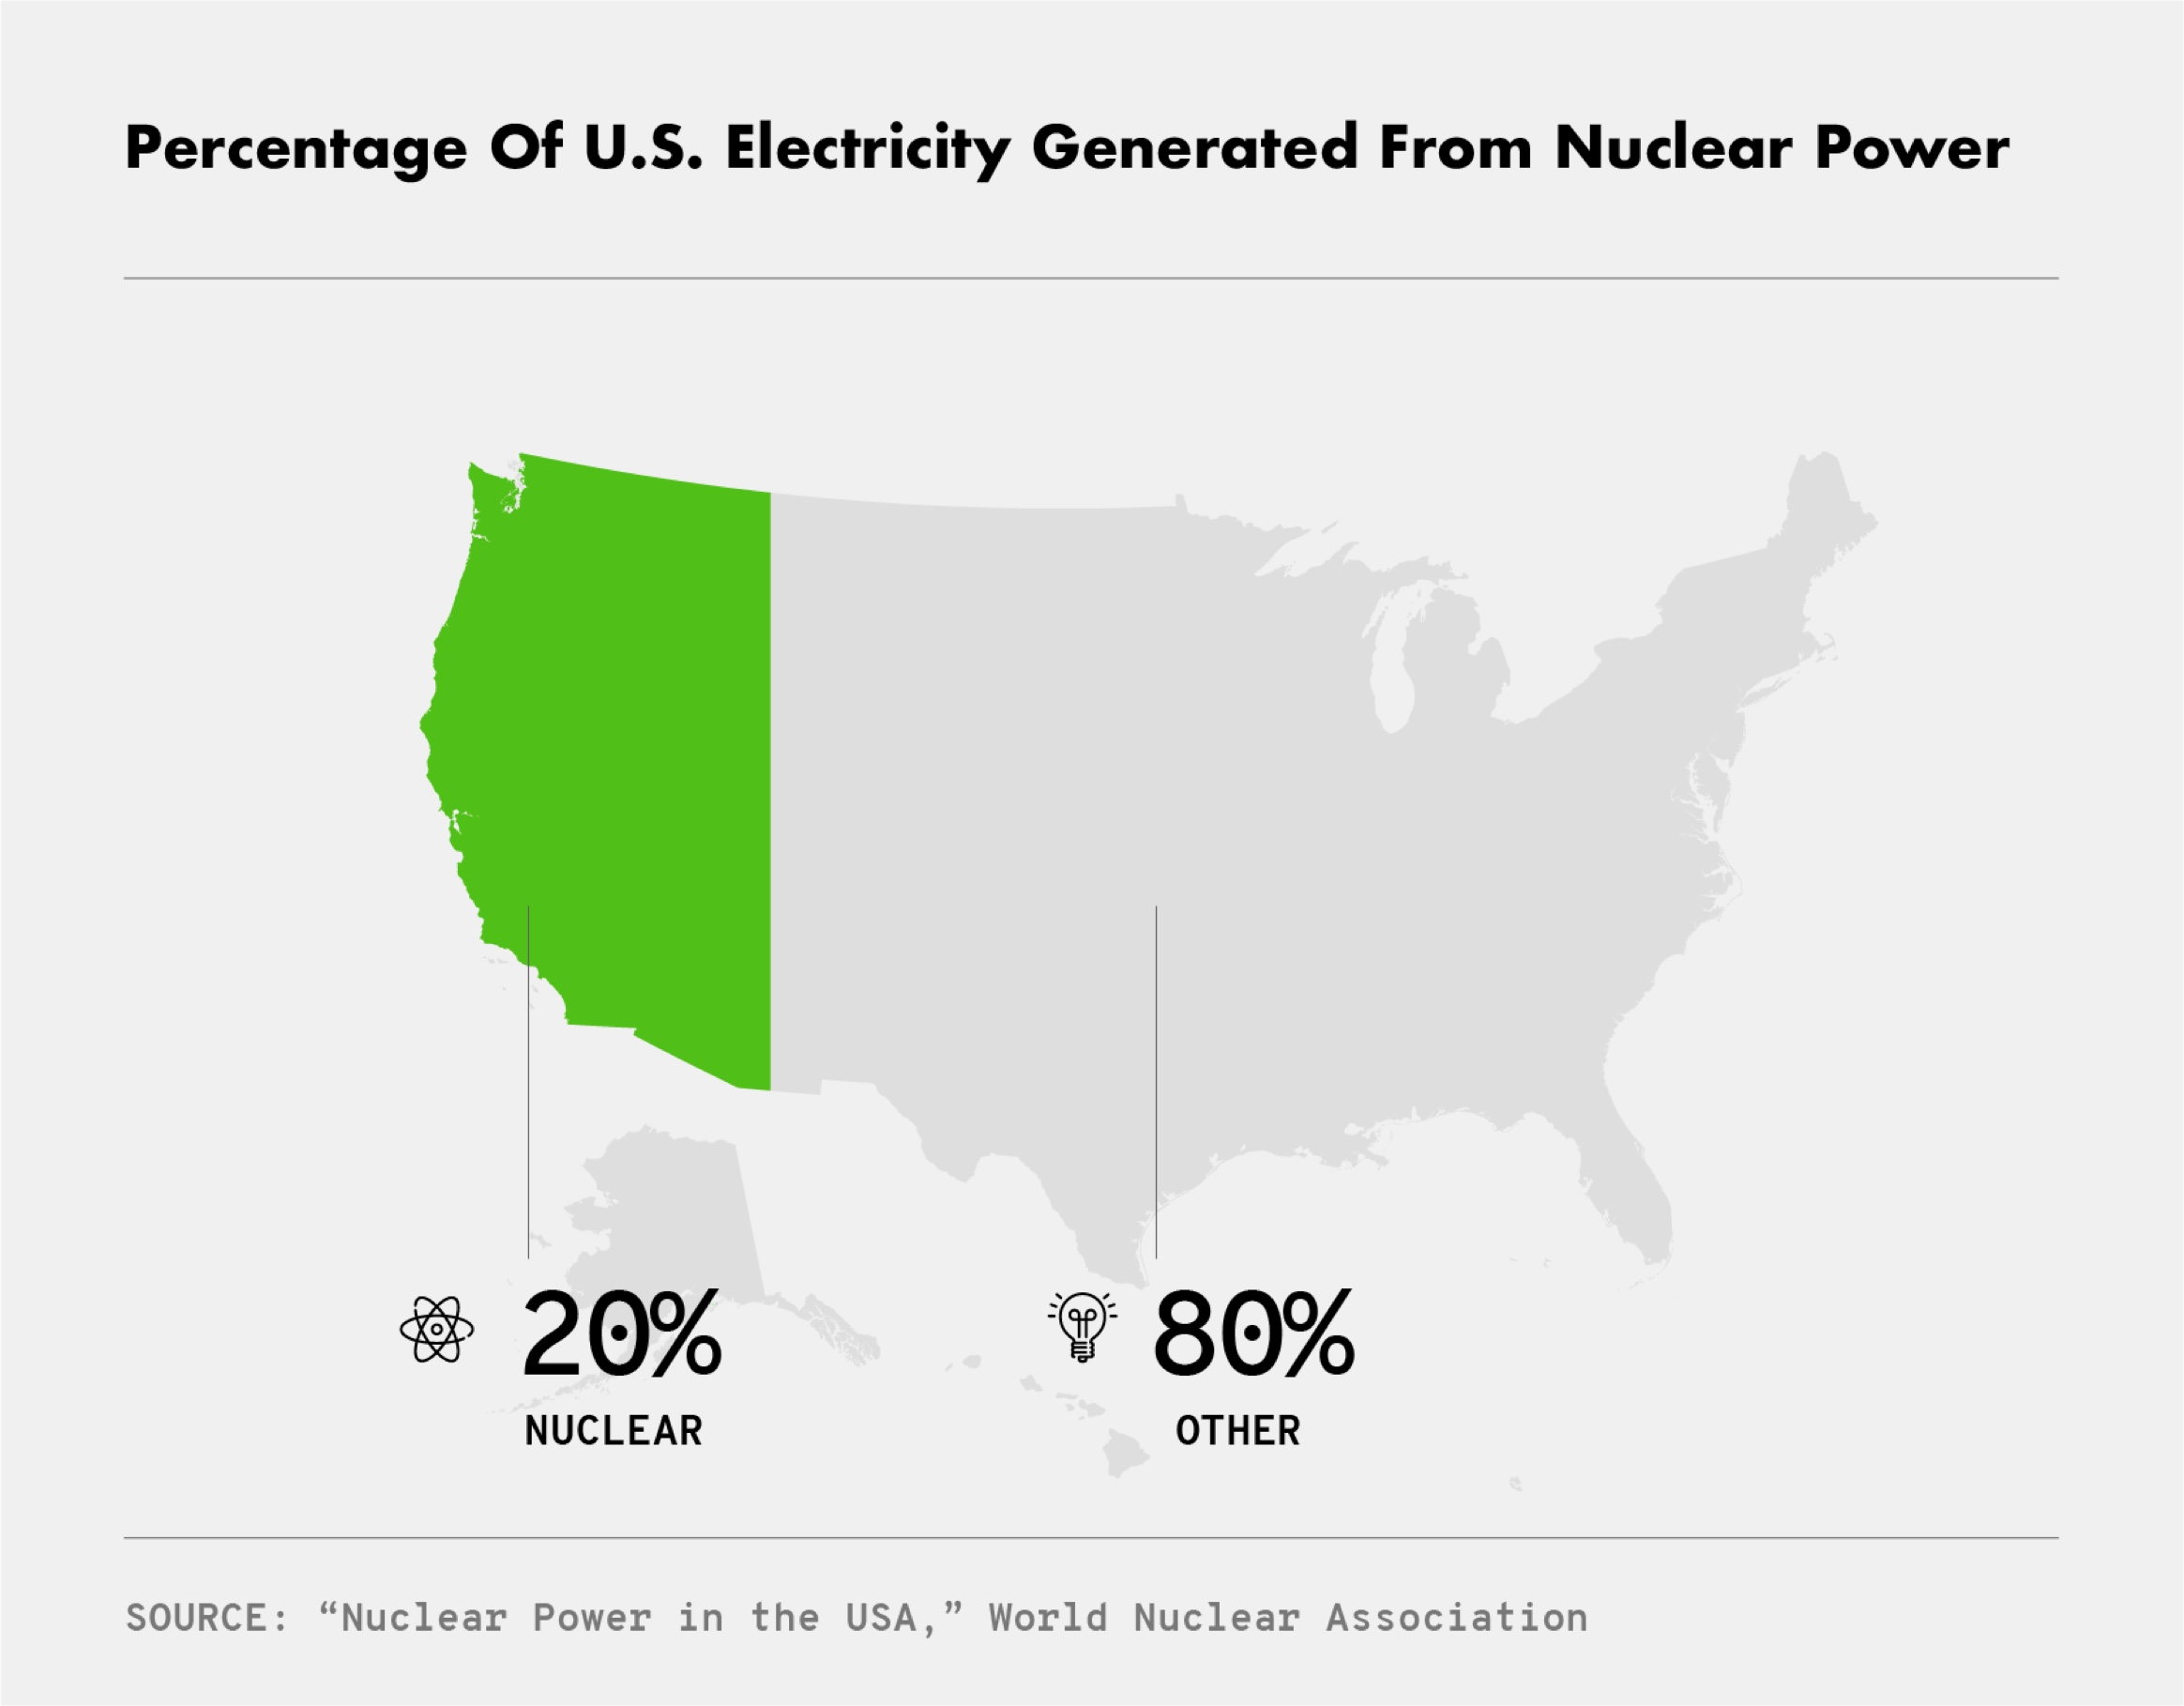 Percentage of U.S. Electricity Generated from Nuclear Power